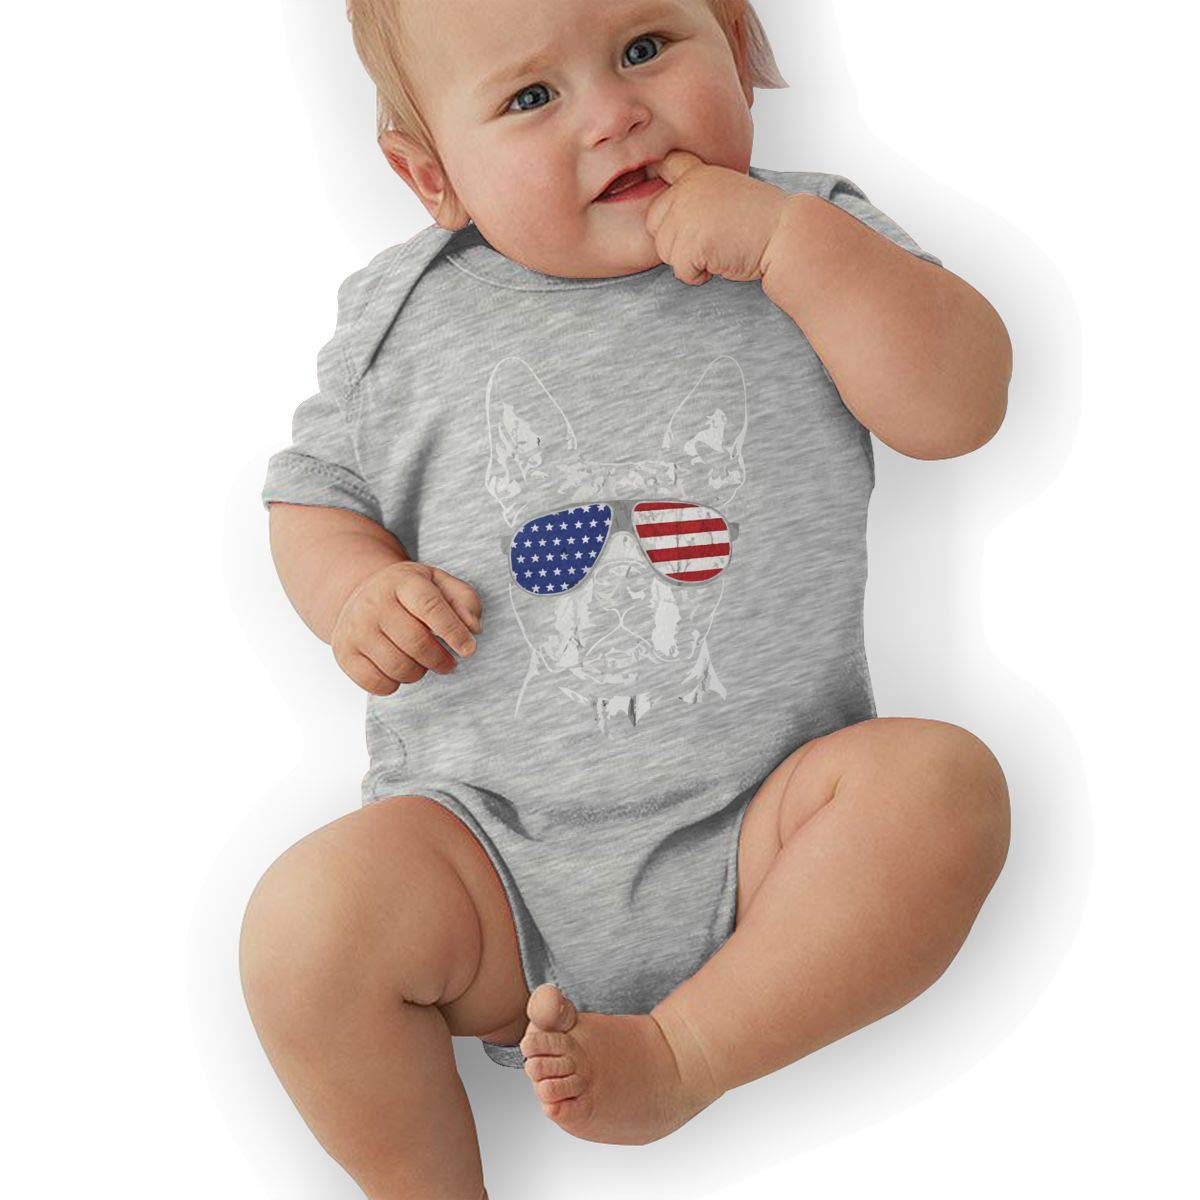 Boston Terrier with USA Flag Sunglasses Baby Rompers One Piece Jumpsuits Summer Outfits Clothes Gray